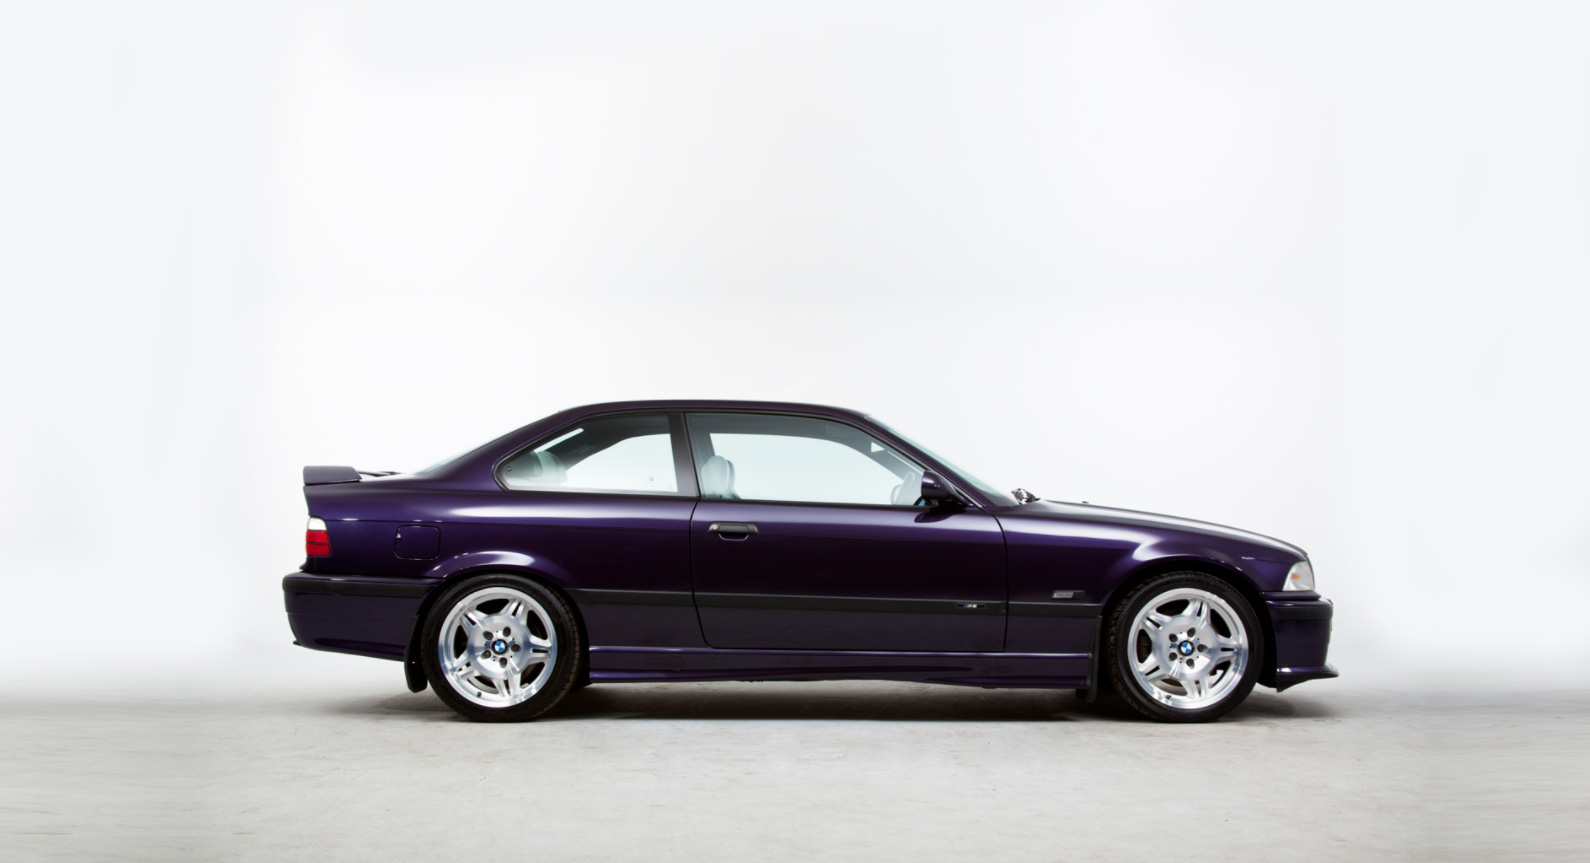 Classic Car Find Of The Week: 1996 BMW E36 M3 Evolution